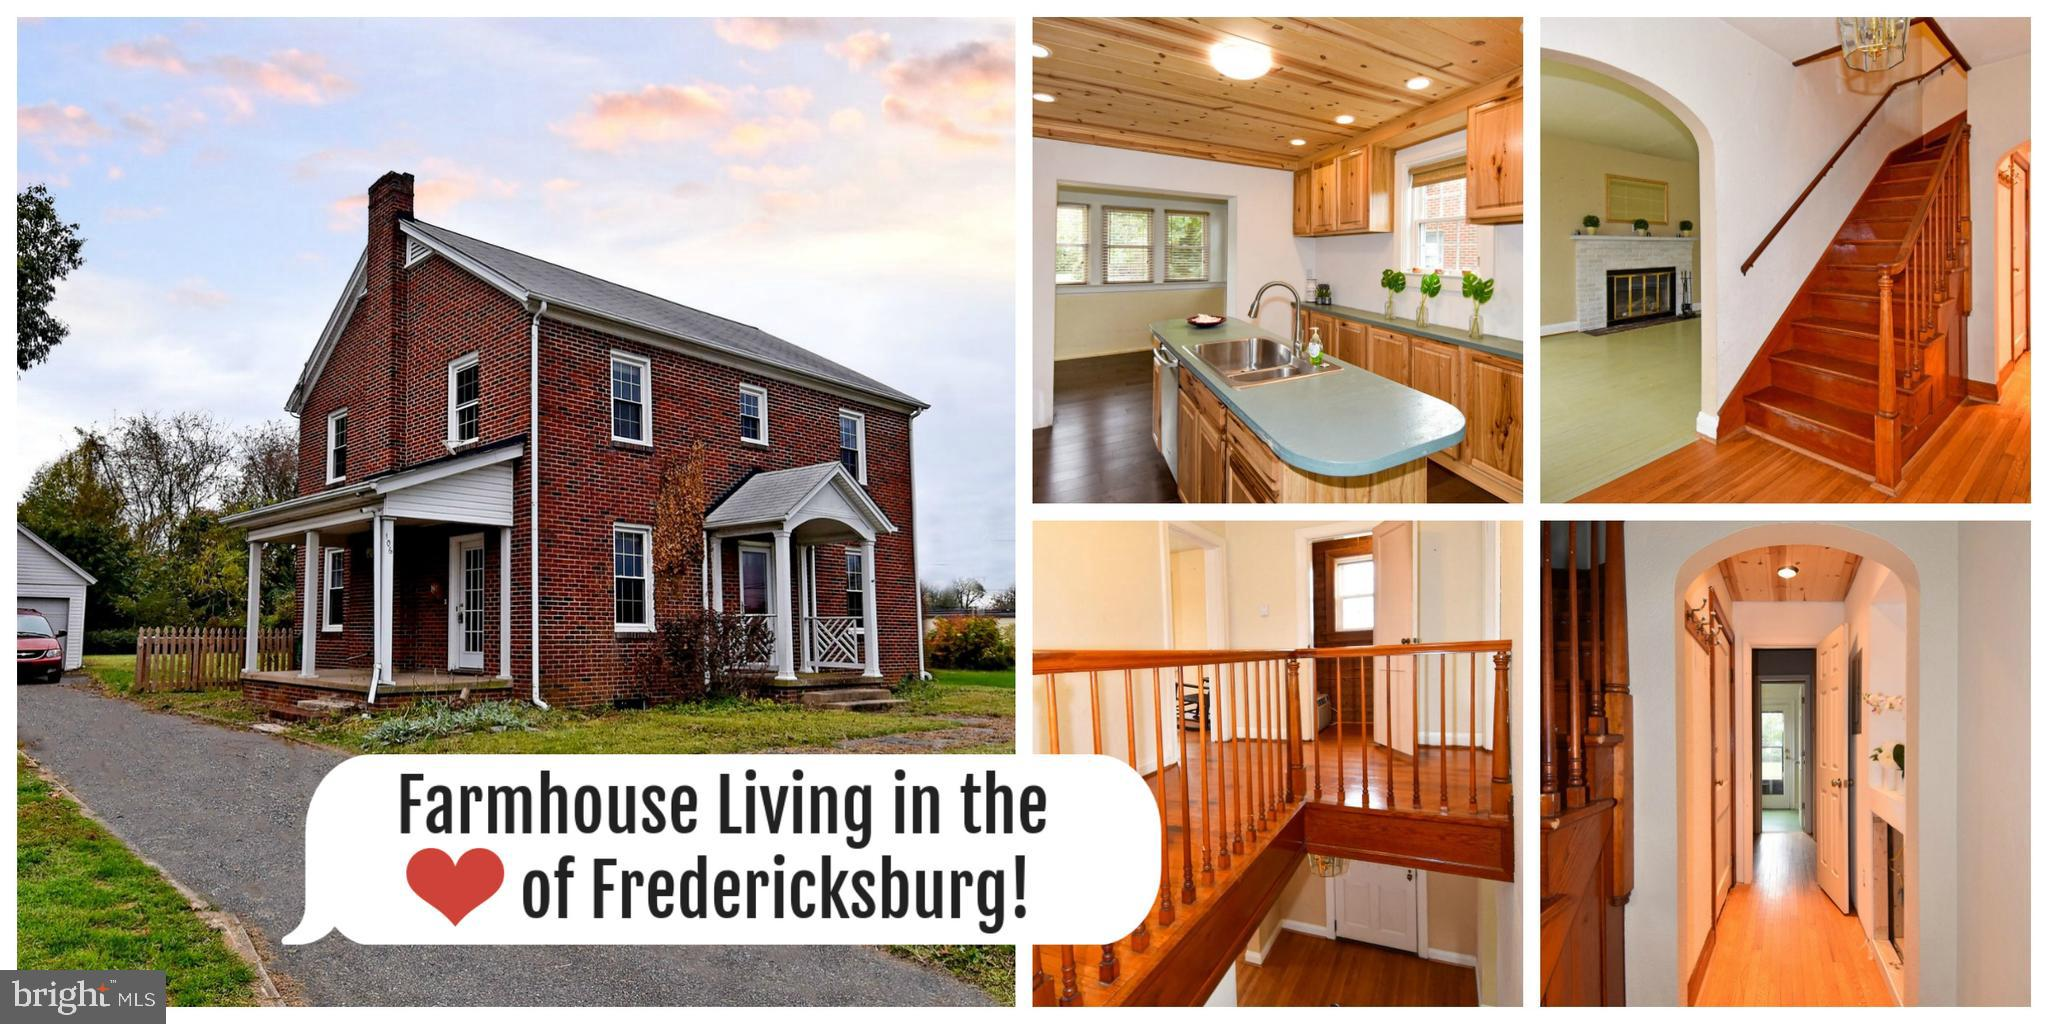 Welcome Home: Beautiful one of a kind brick home in the heart of Fredericksburg. Walking distance to